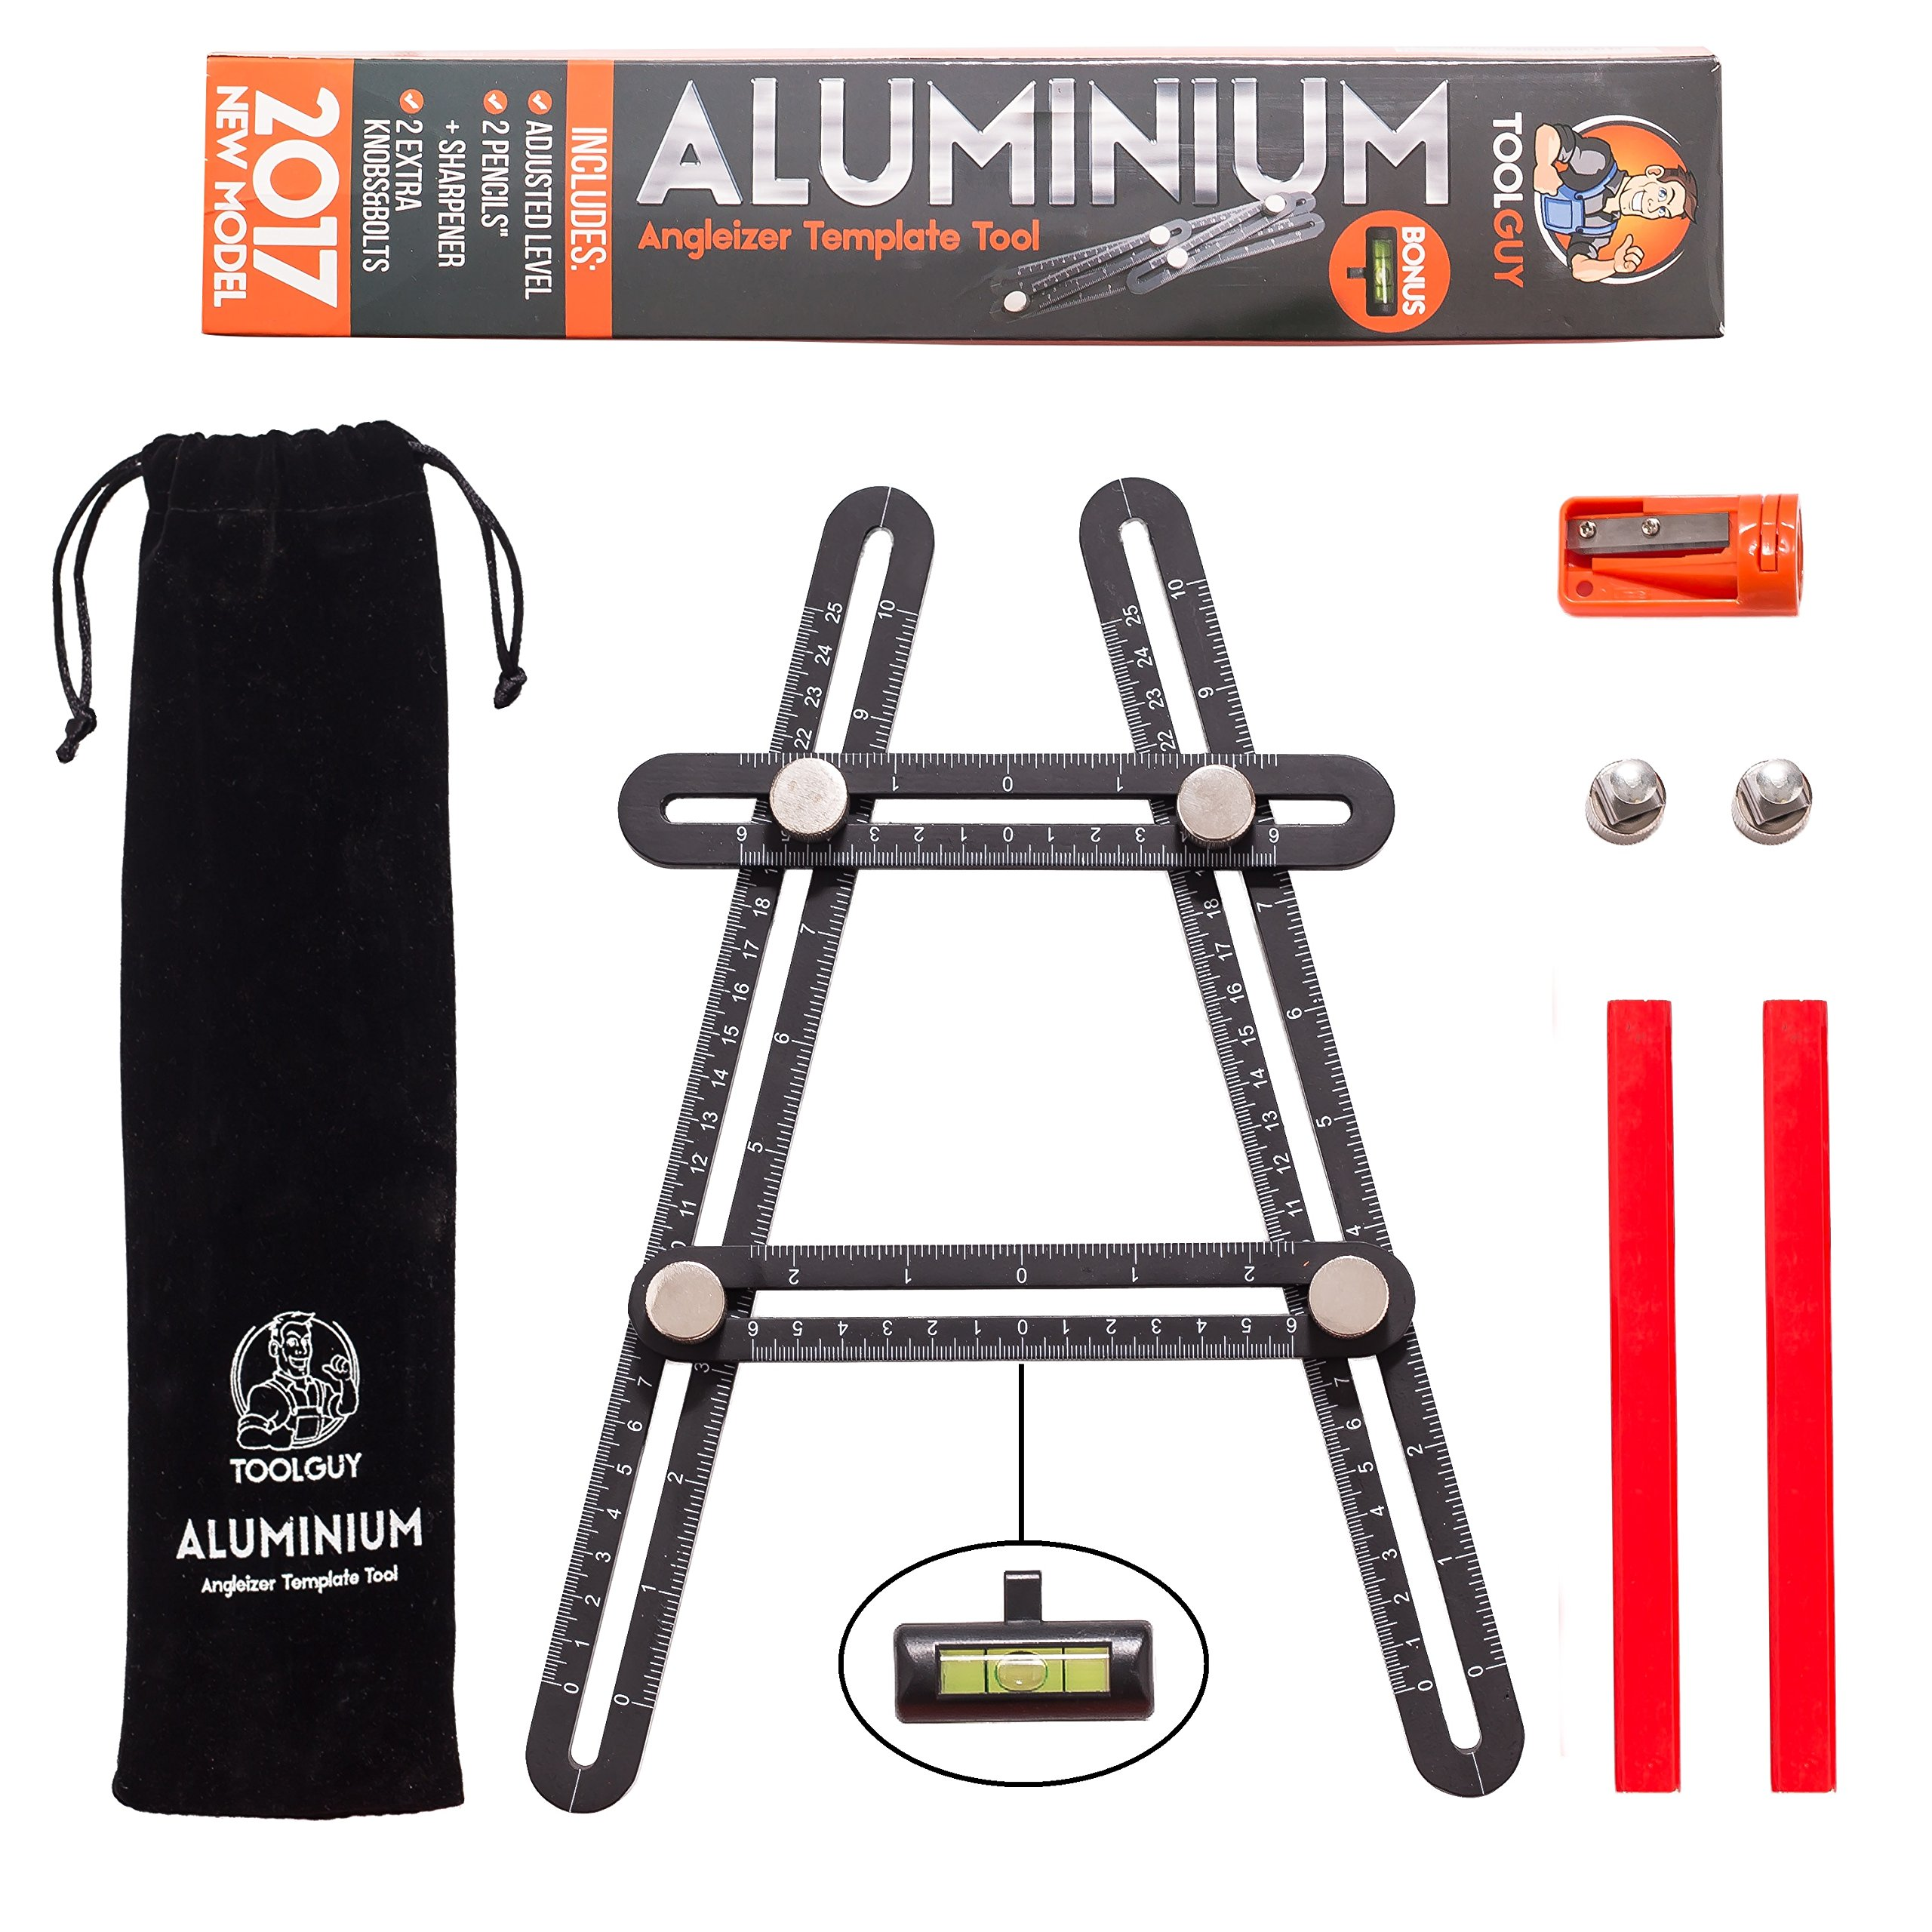 ToolGuy Angleizer Template Tool 100% Aluminum Upgraded with Customized Leveler, Metal Bolts and Knobs, Best For Builders, Handyman'S and Diy Ers by ToolGuy (Image #1)